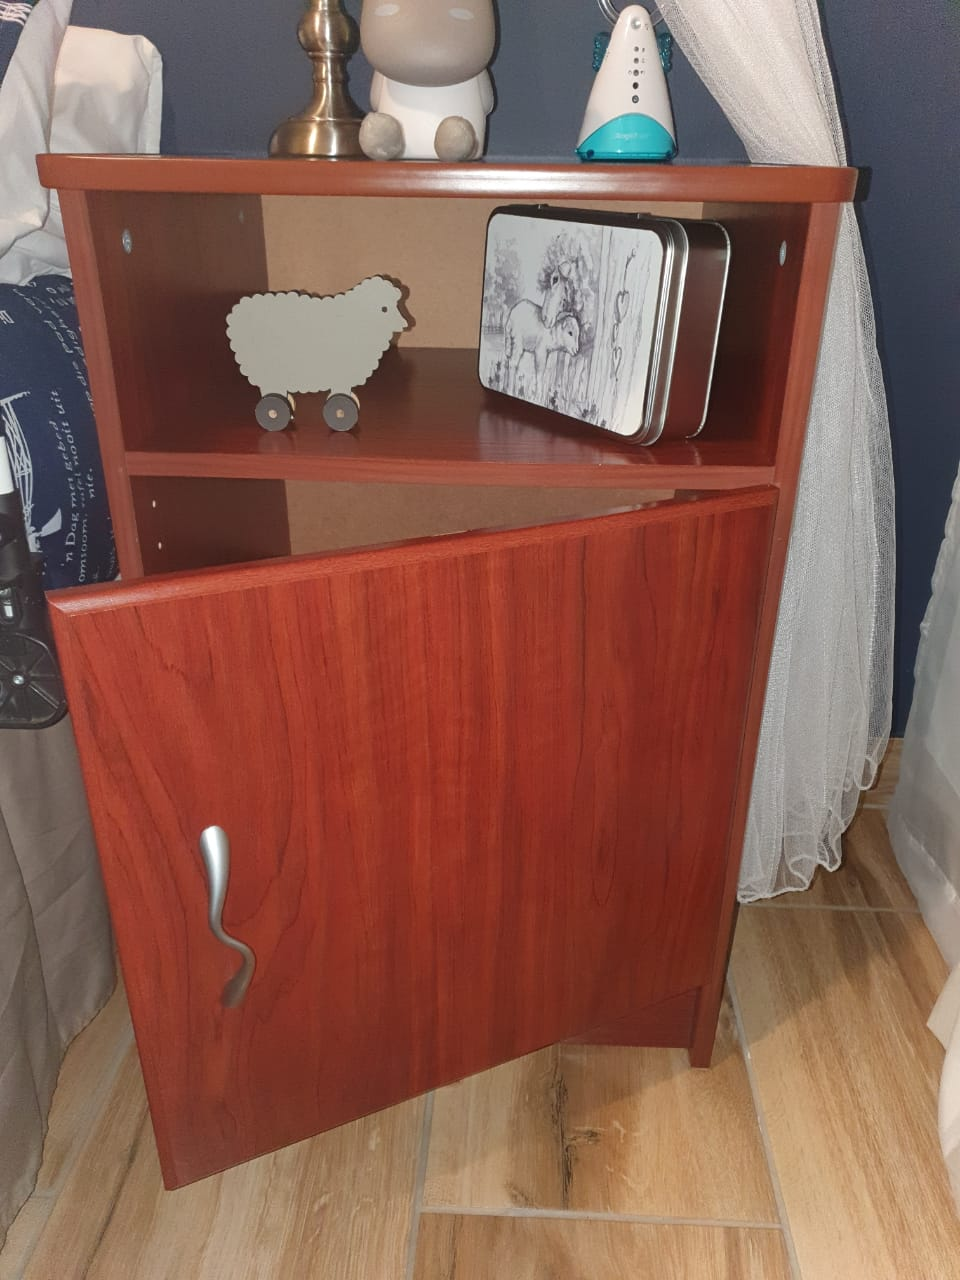 Room in a box 5 piece baby furniture